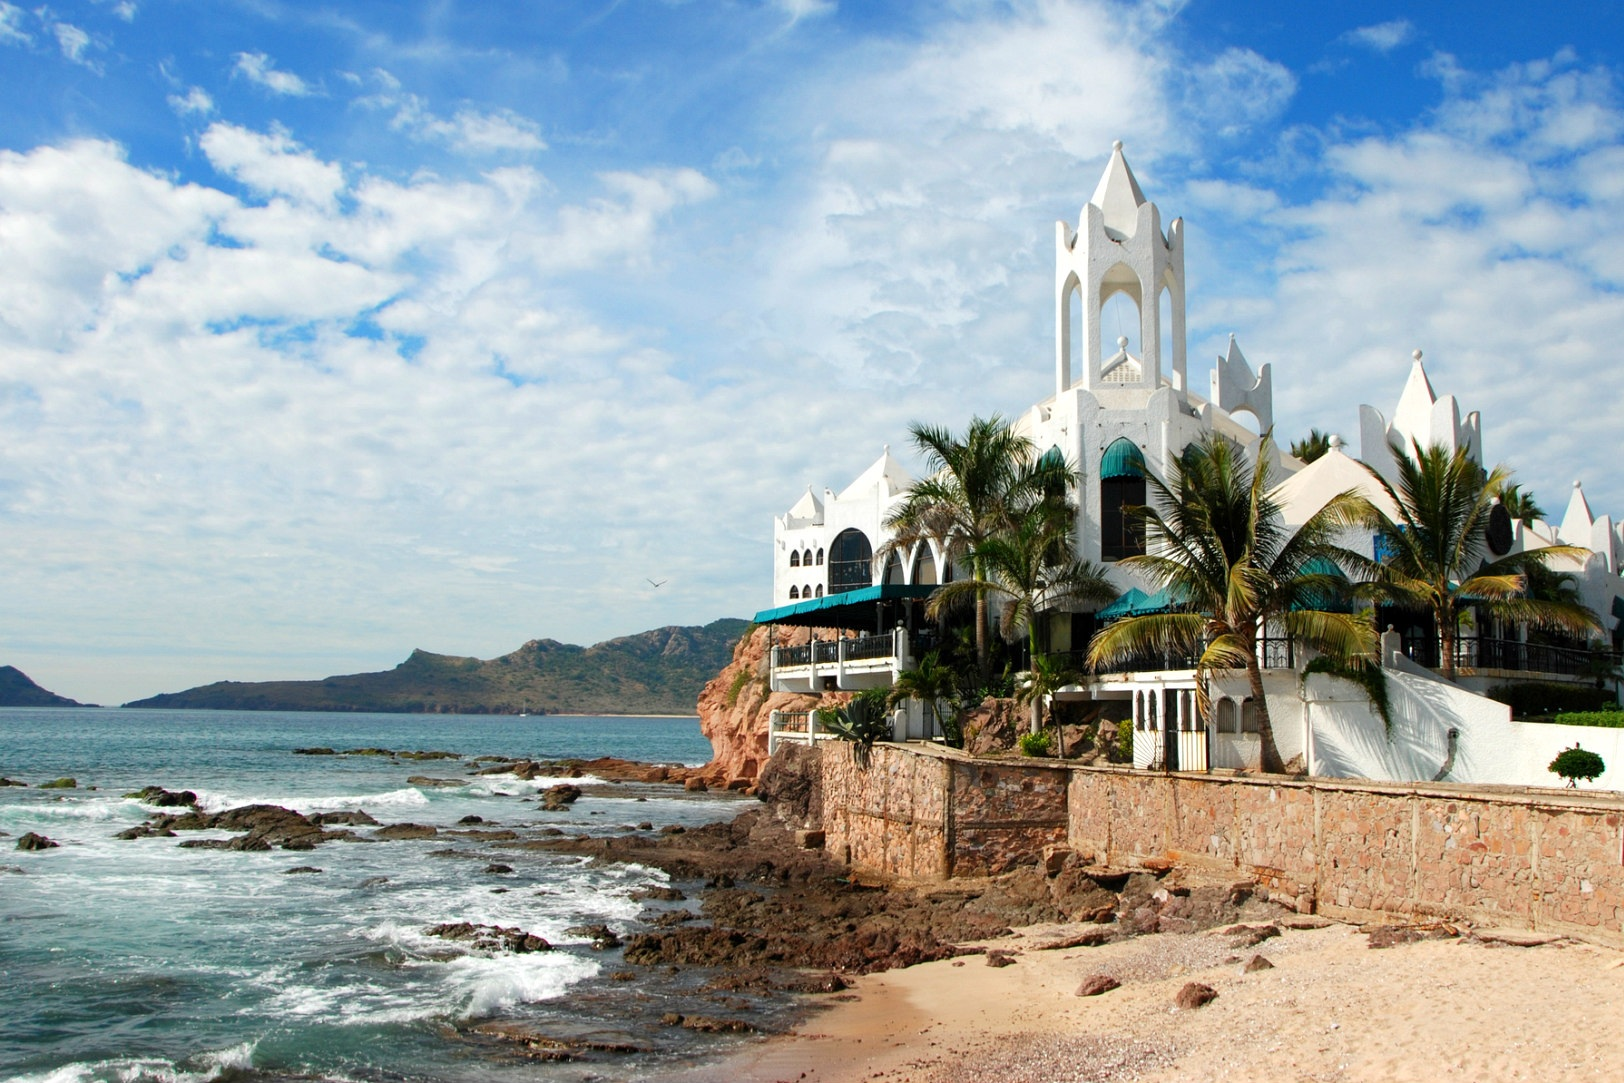 ShermansTravel: - 10 Free and Affordable Things to Do in Mazatlán